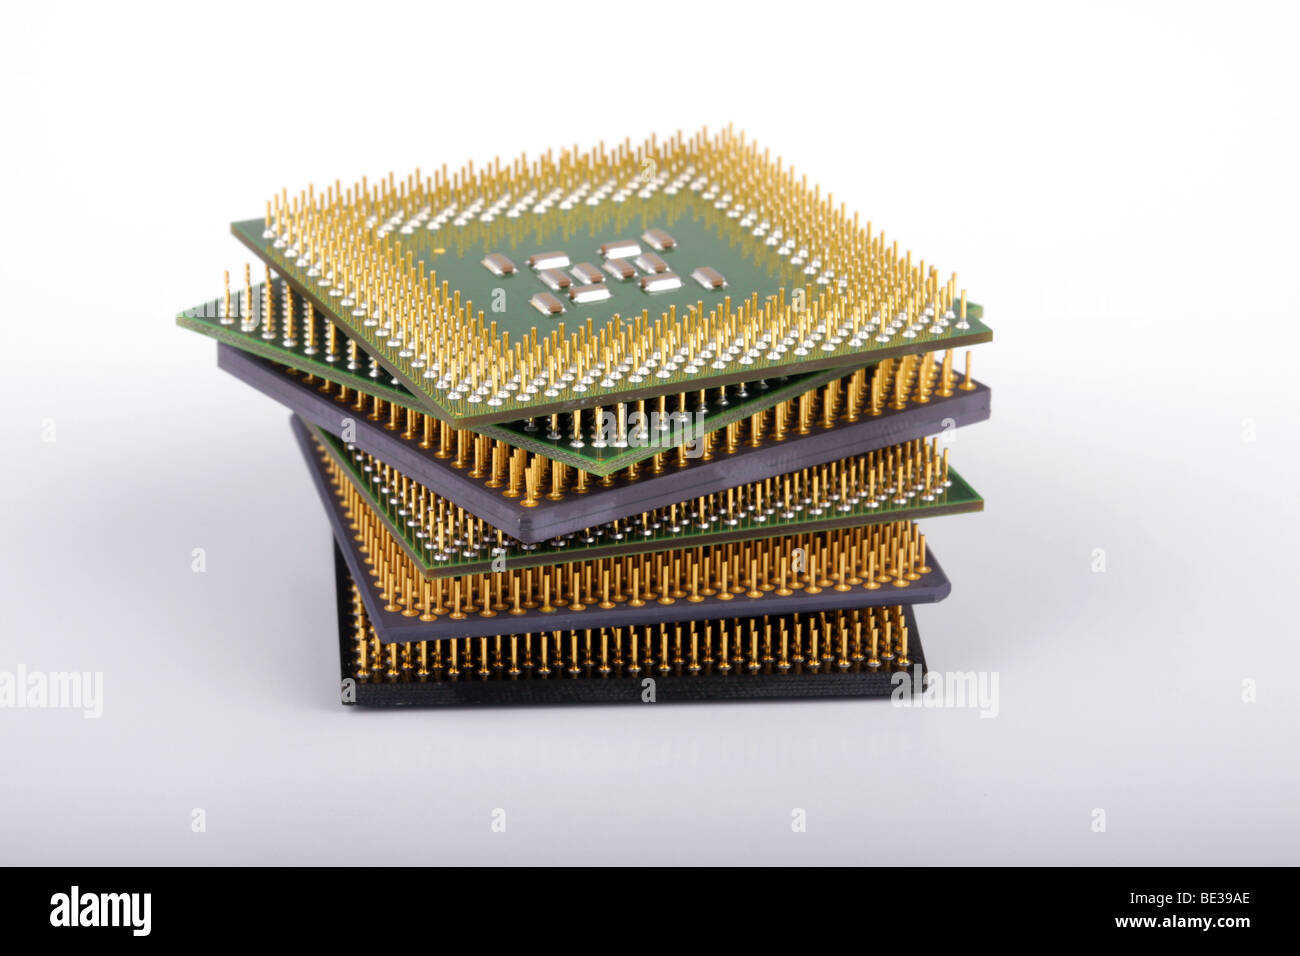 Stack of several central processing units of various types and shapes. - Stock Image